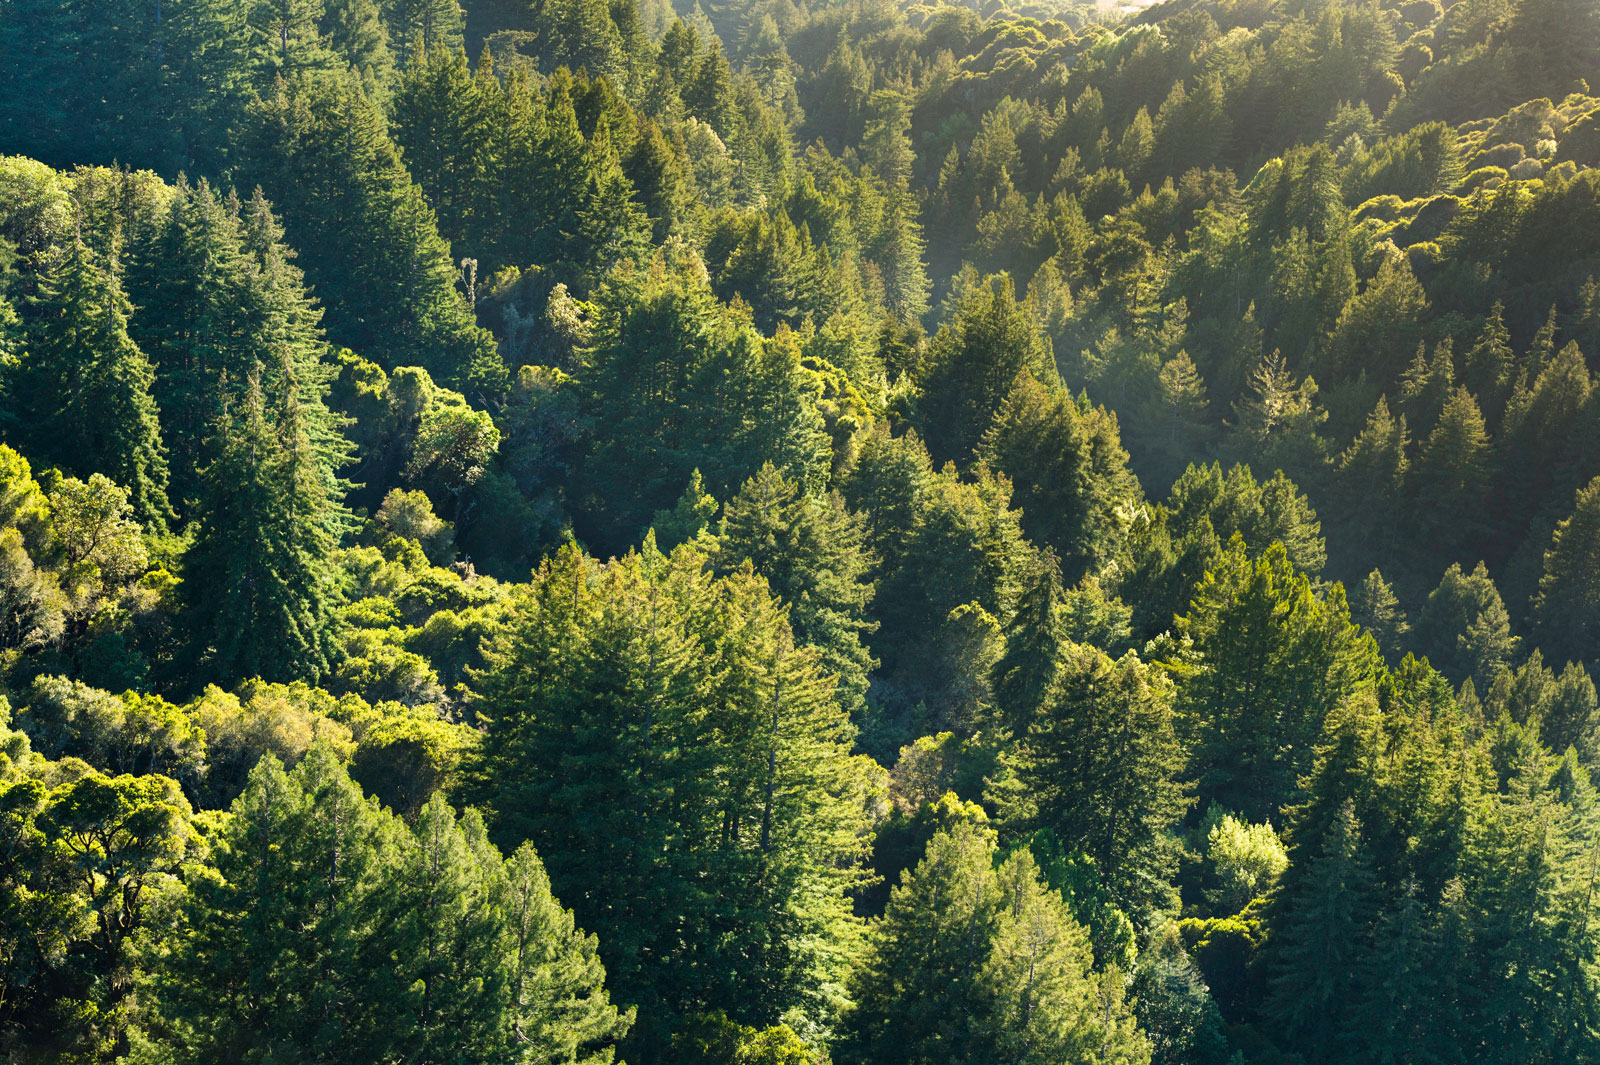 Mixed coniferous and deciduous forest, Monterey Bay, California, USA